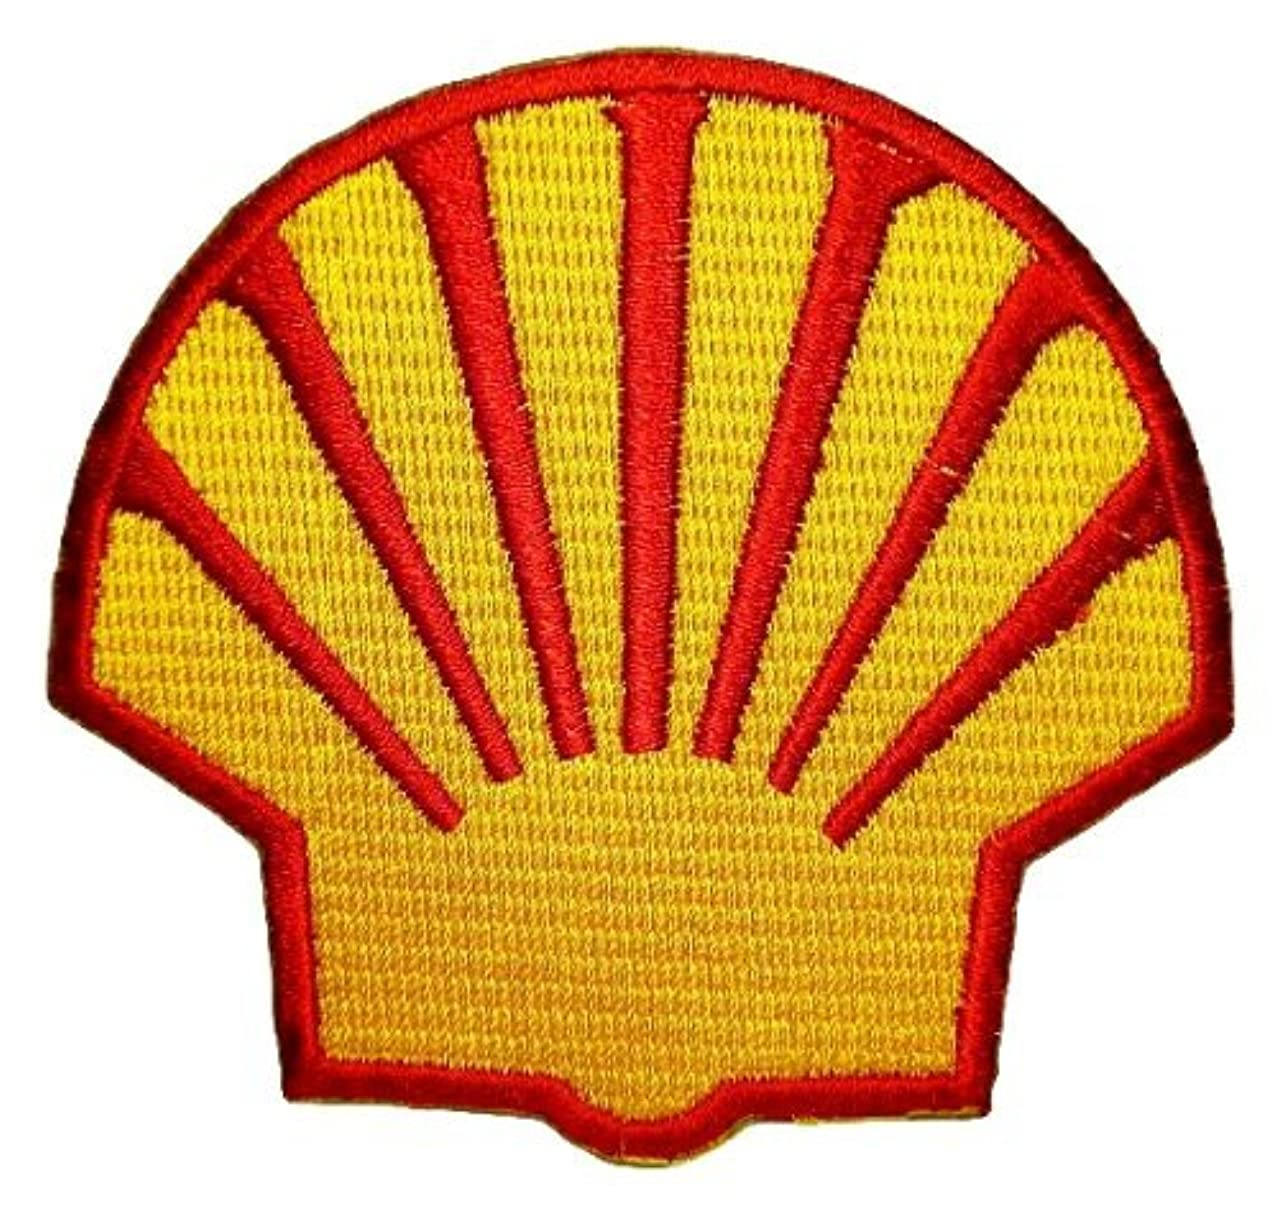 Shell gas station Oil petroleum F1 Patch Sew Iron on Logo Embroidered Badge Sign Emblem Costume BY Dreamhigh_skyland